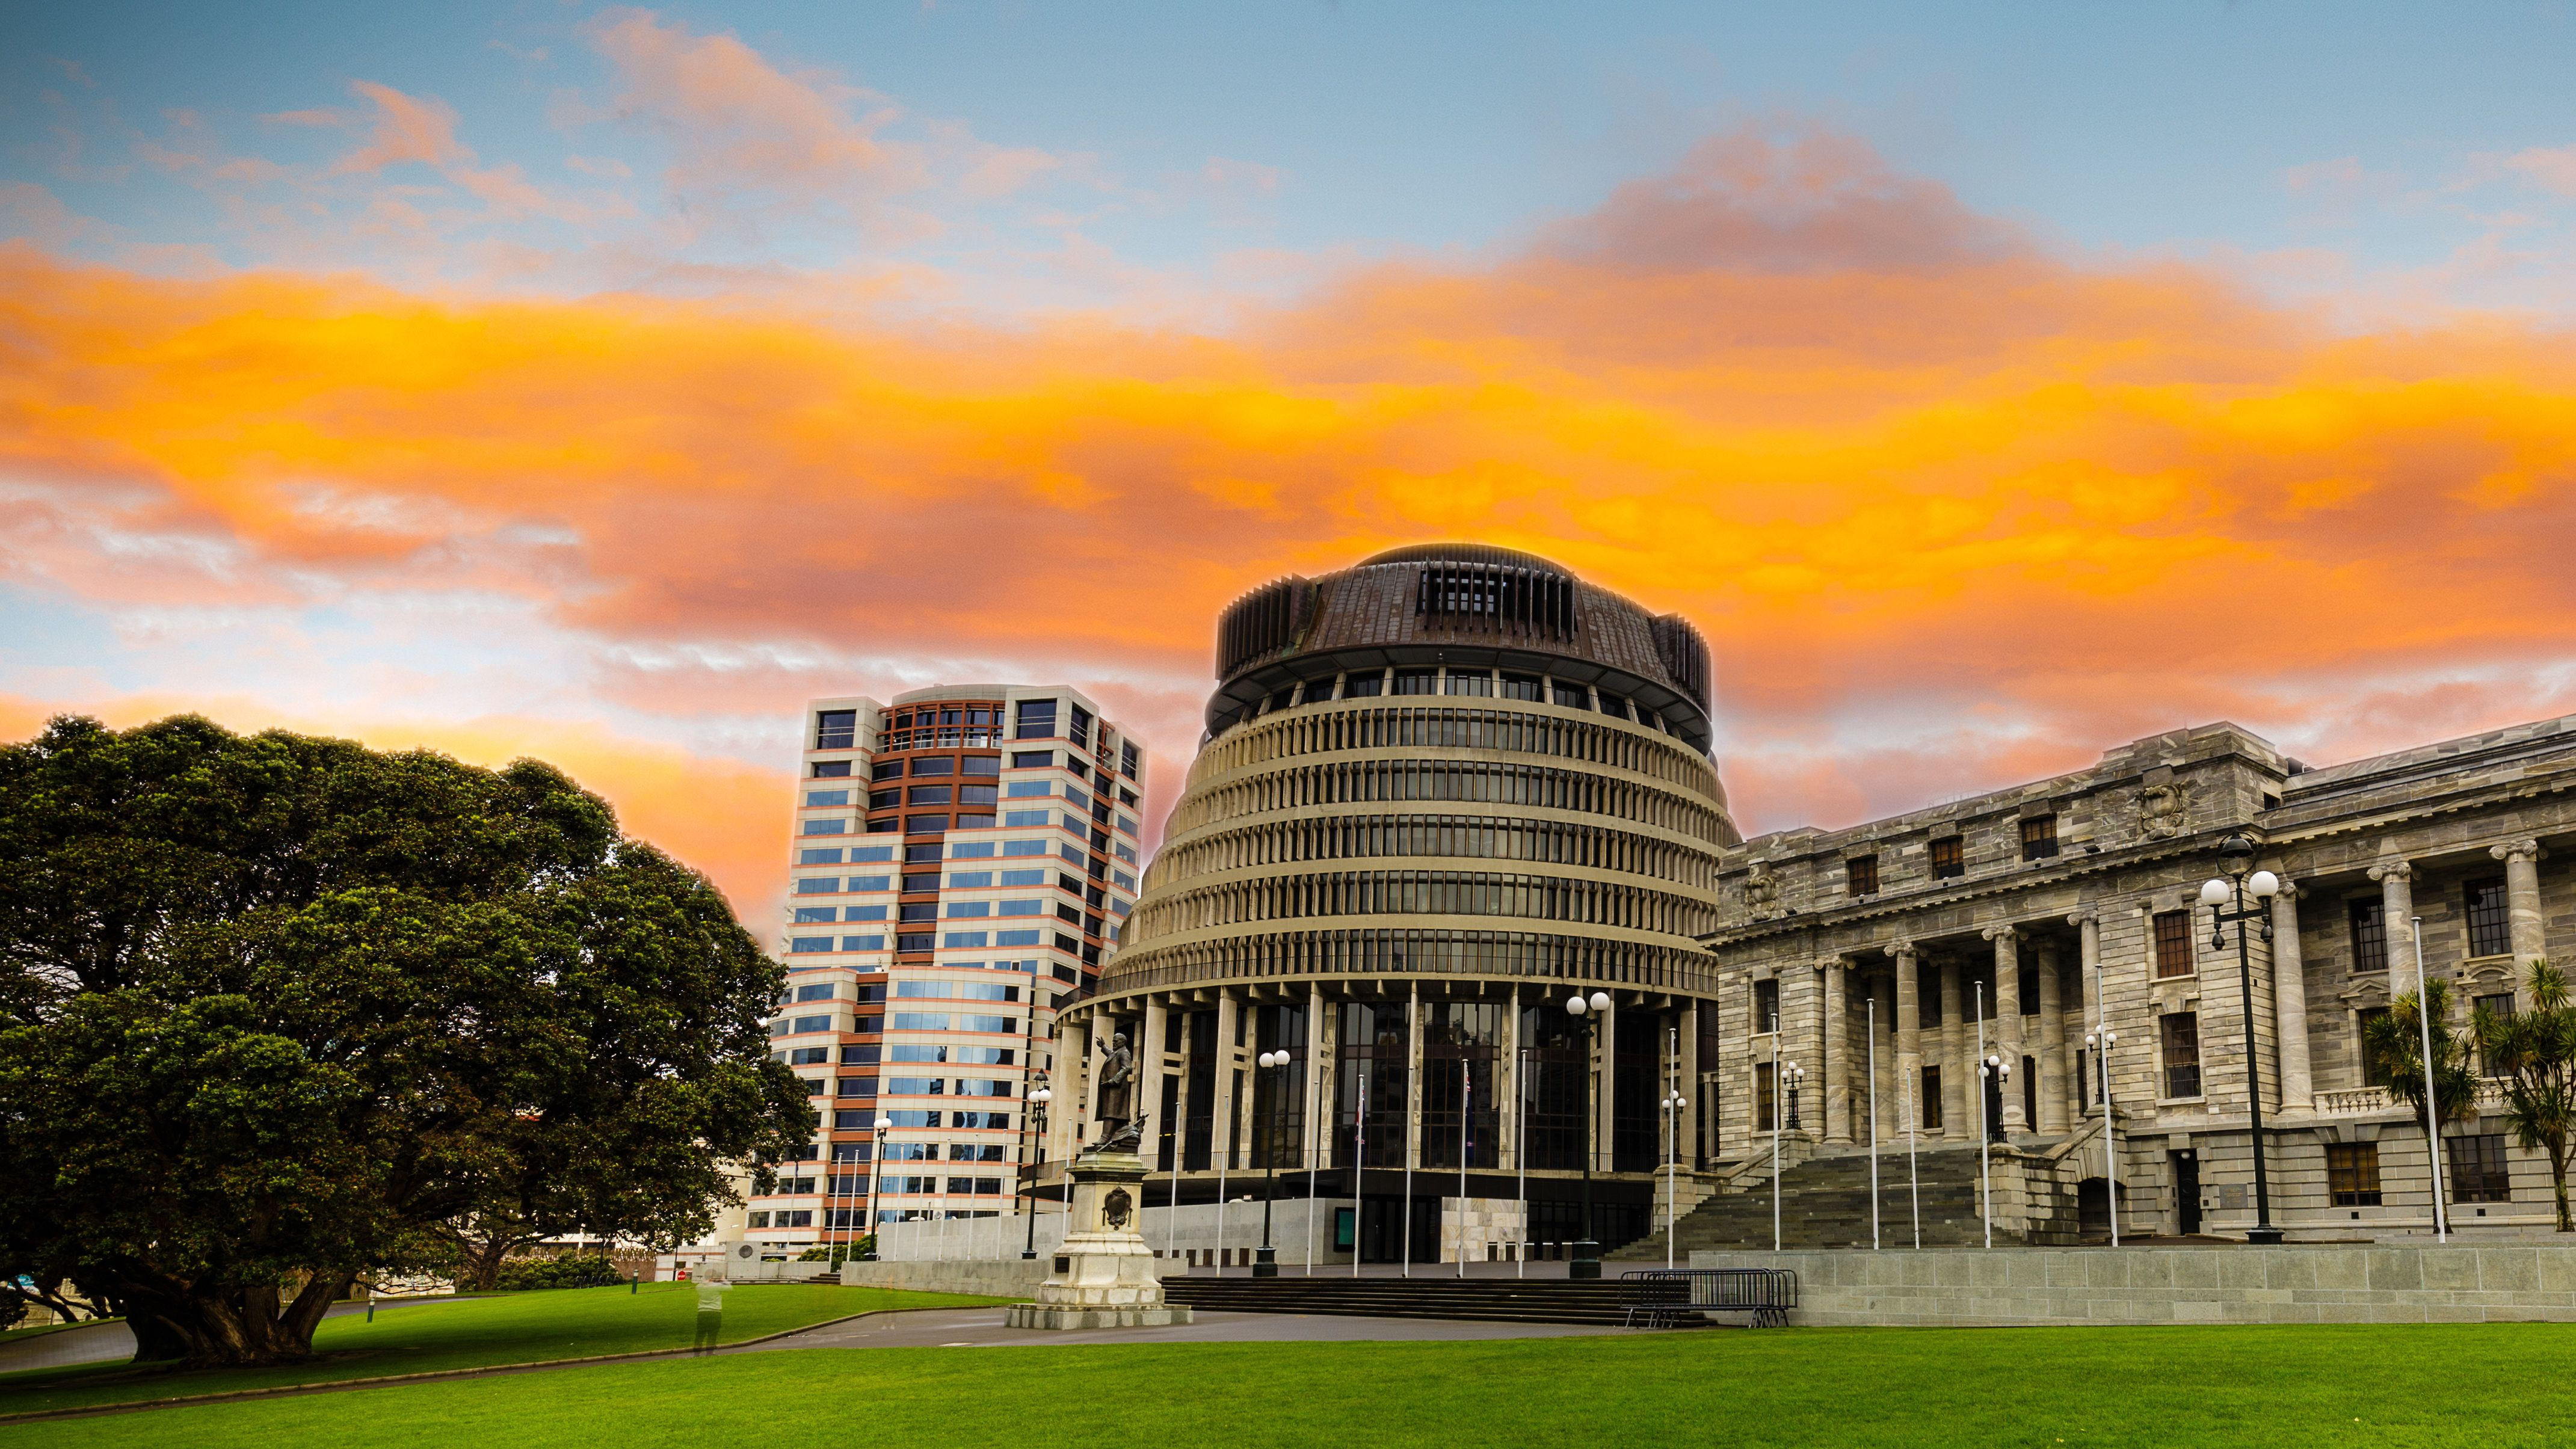 New Zealand parliament building the beehive under a vibrant orange sunset.